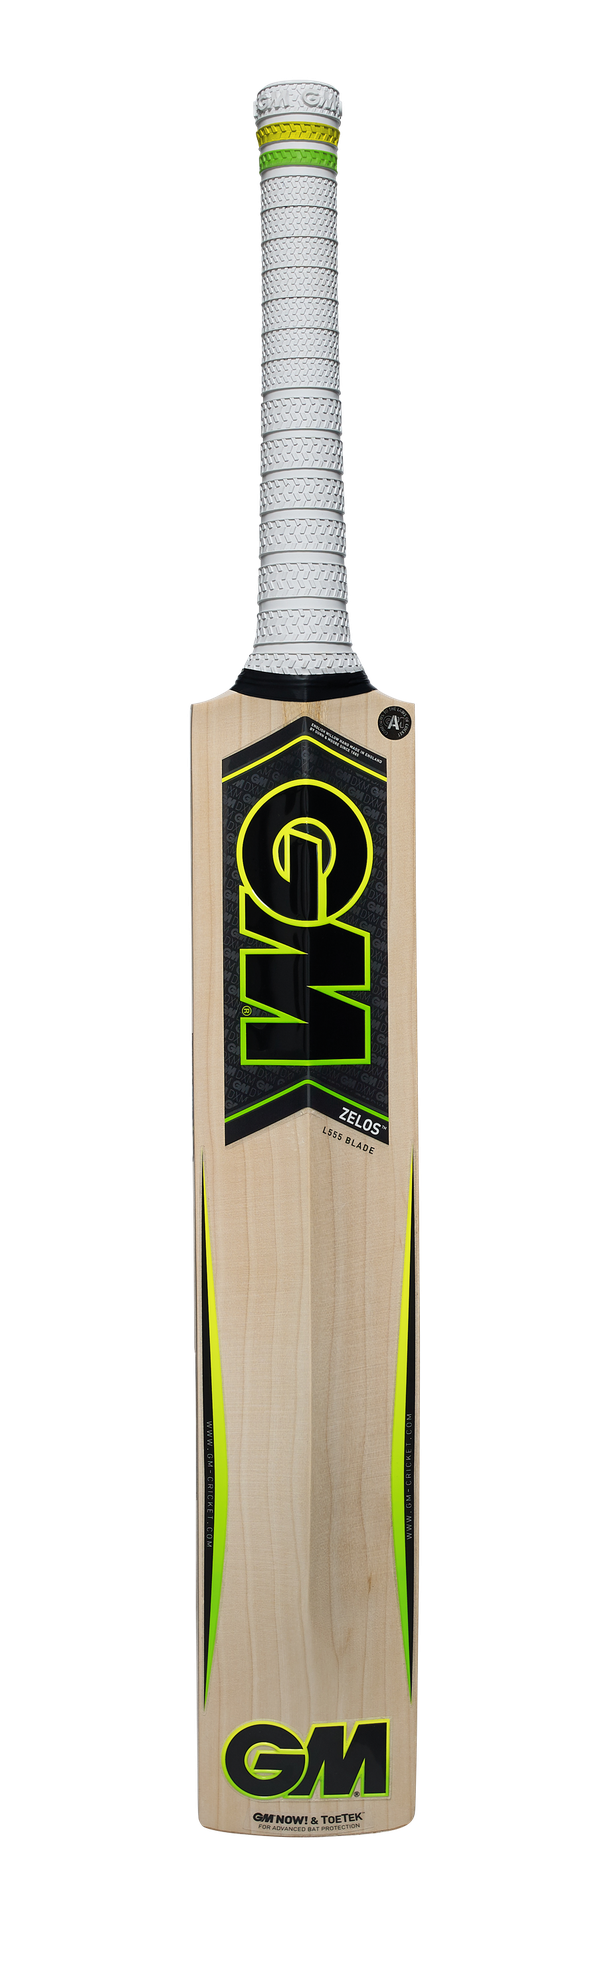 852b749caed Mongoose - I don t think its available India but it get popularity when  Methew Hayden played with this in IPL. It was in discussion because of its  unique ...